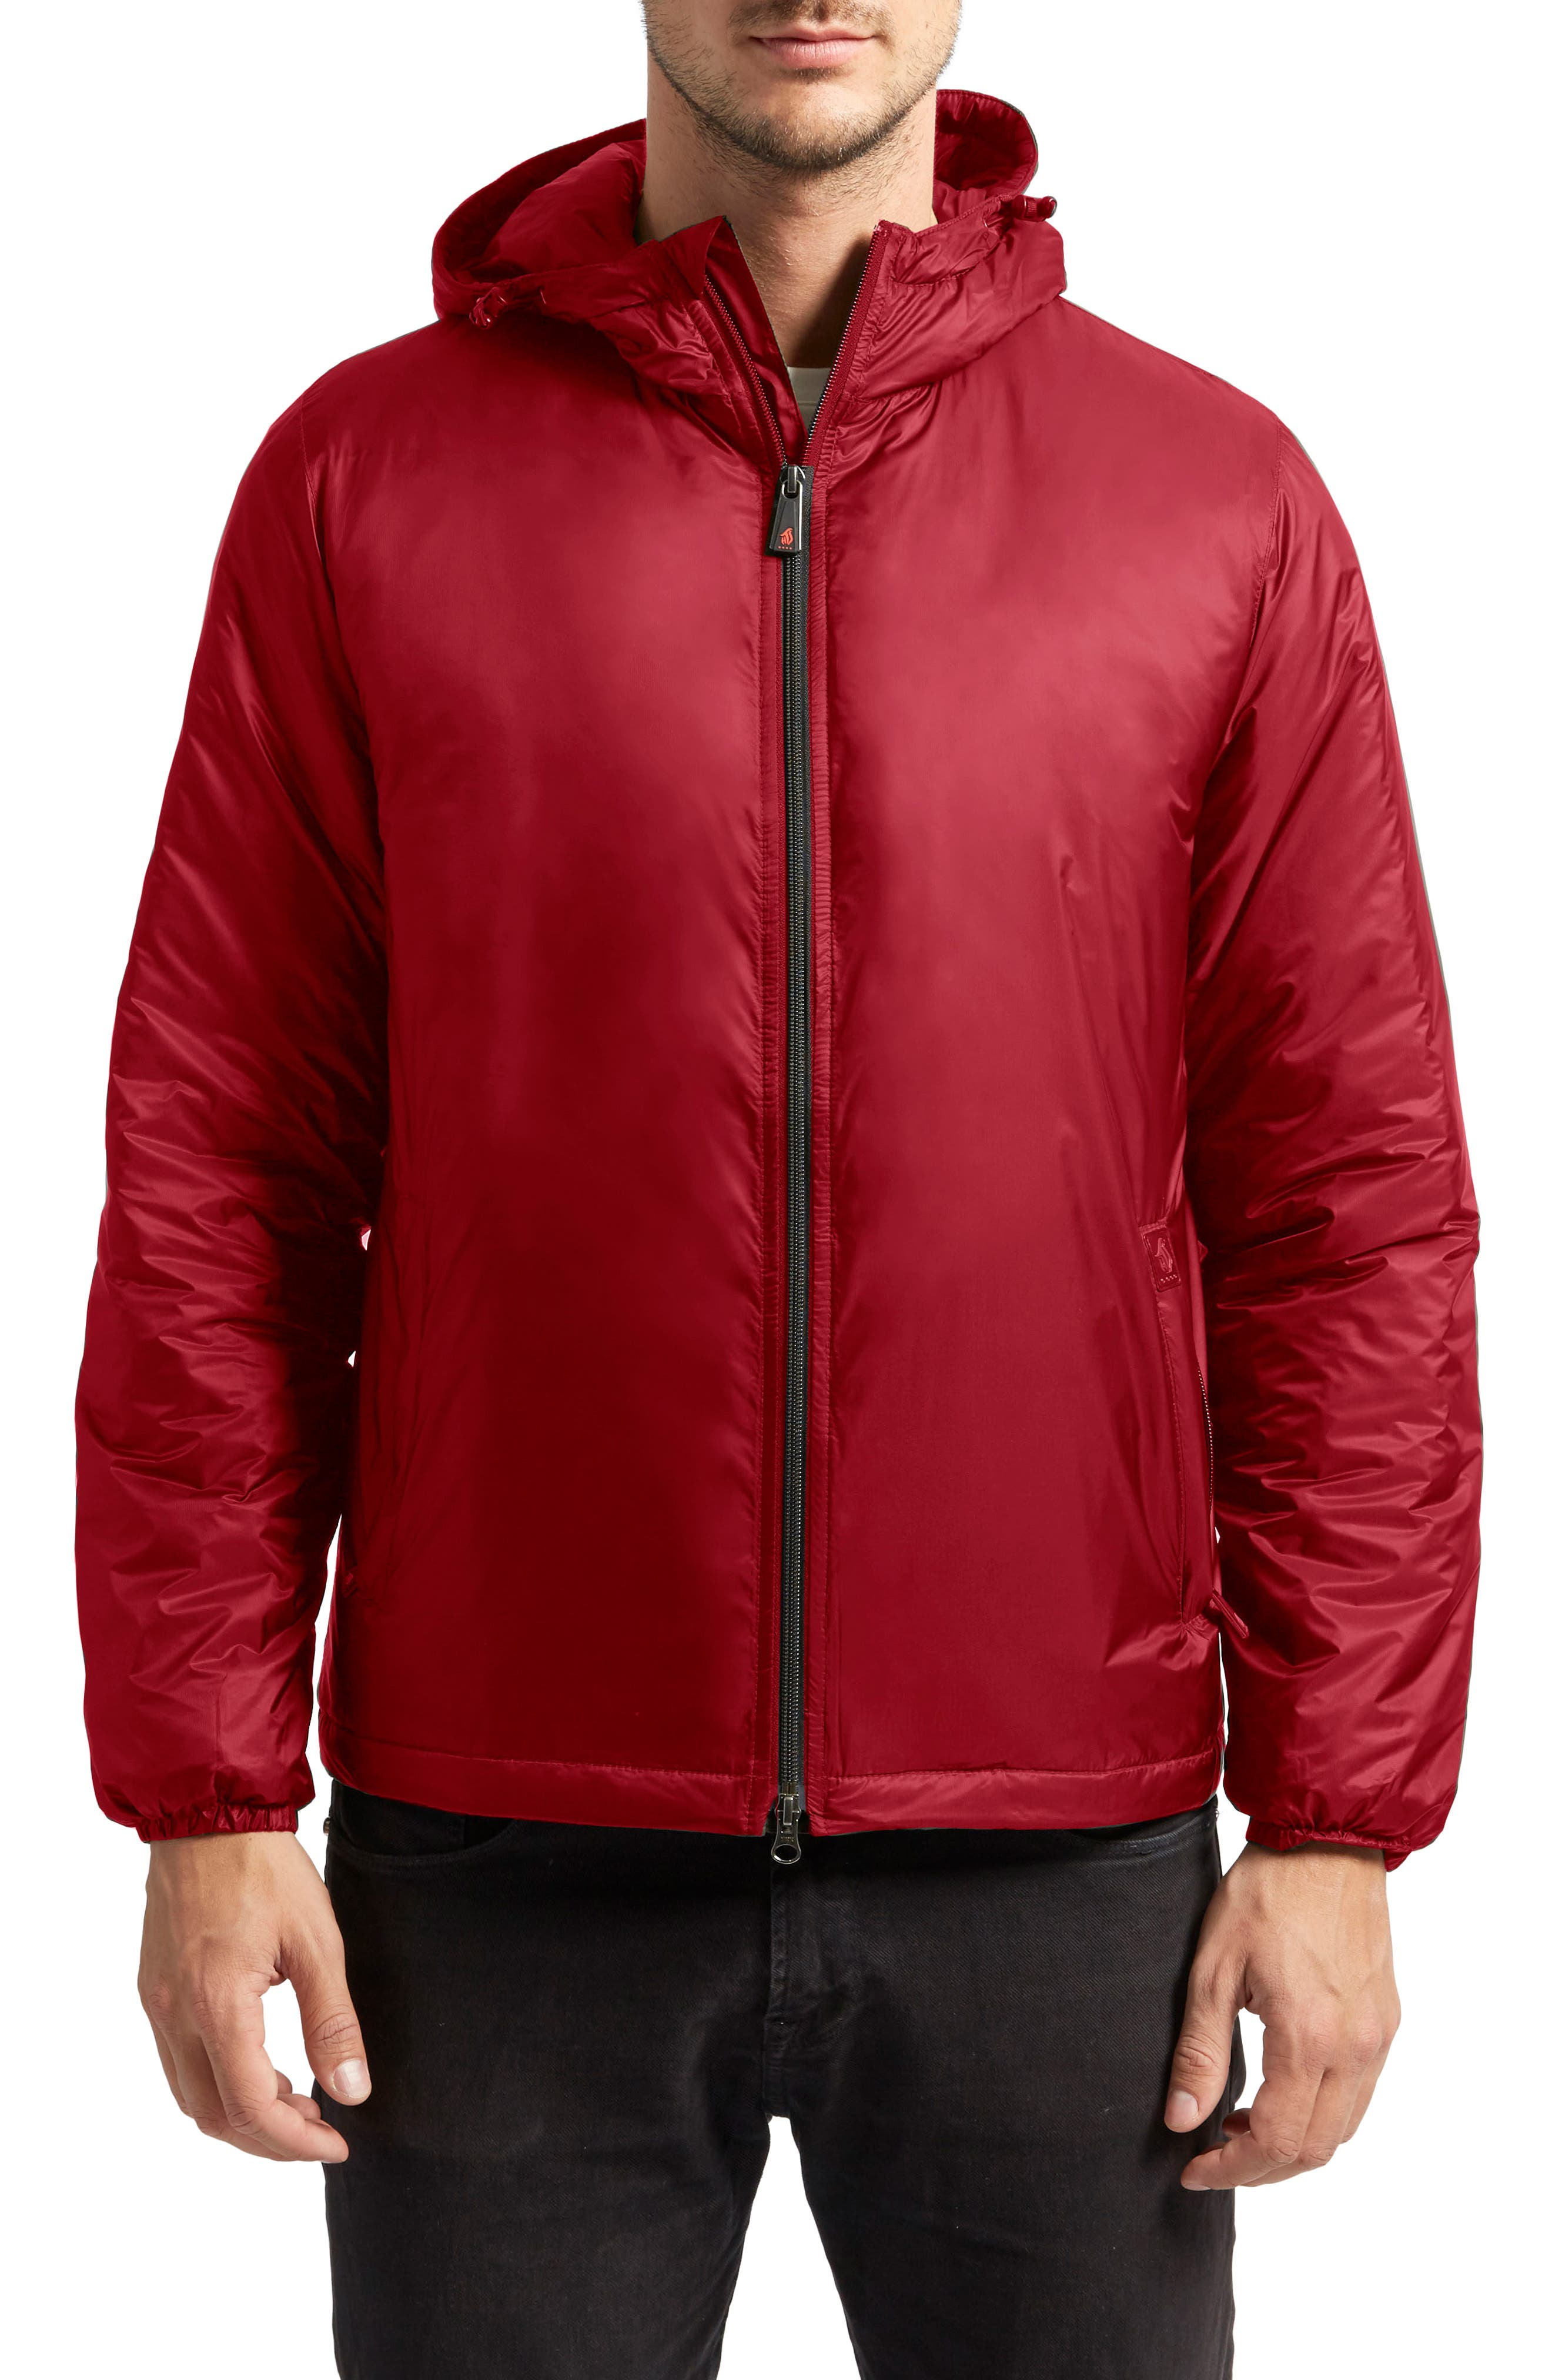 Main Image - ThermoLUXE® Arvada Packable Heat System Hooded Jacket